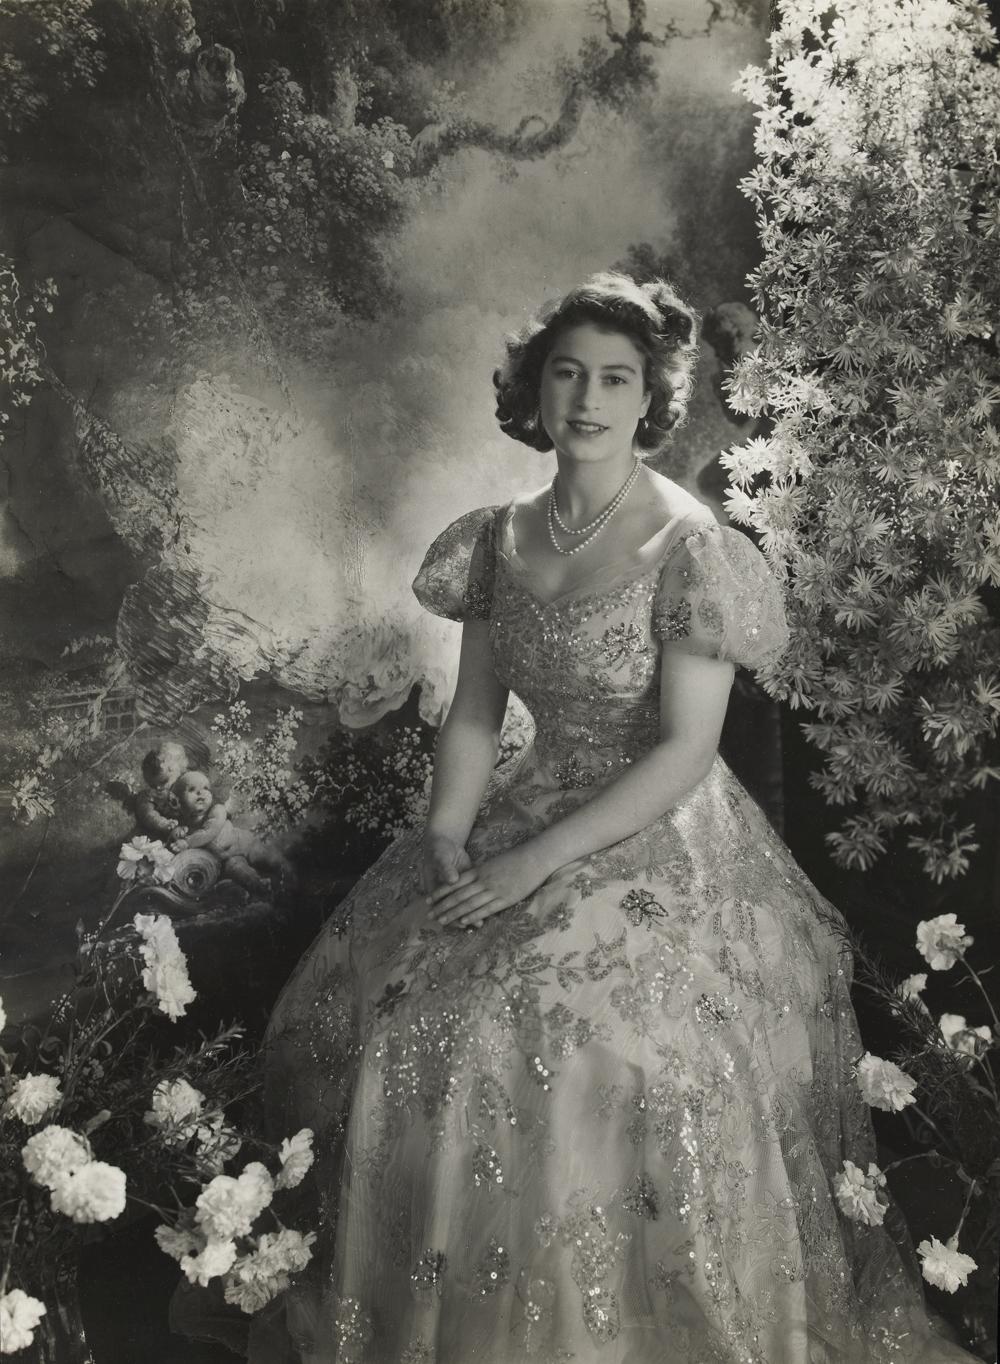 Princess Elizabeth by Cecil Beaton, March 1945. (Image: V&A)